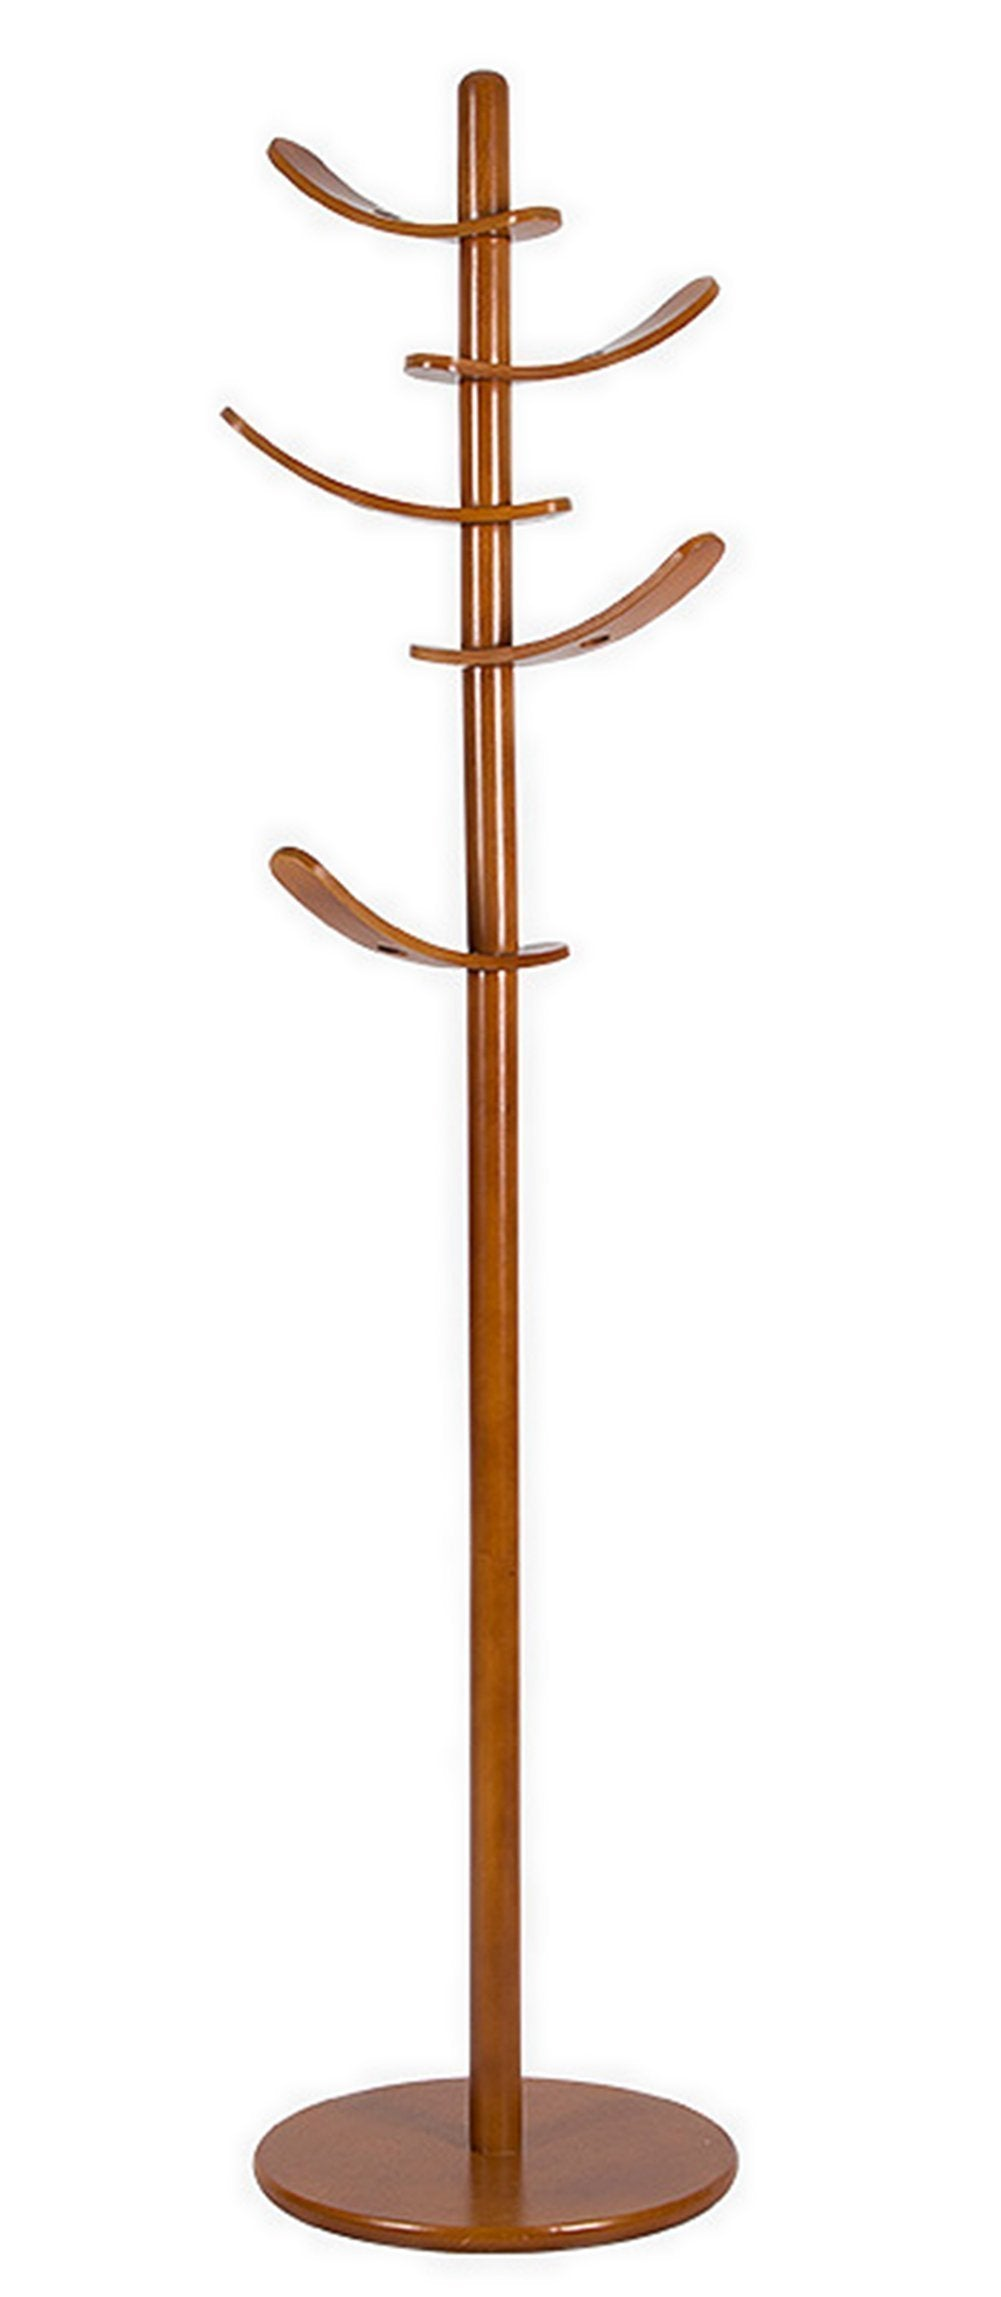 Yaker's collection Sturdy Free Standing Coat Rack with 6 Sail Rotated Hooks,Round Base Rubber Wood Hall Tree for Kids (Walnut)